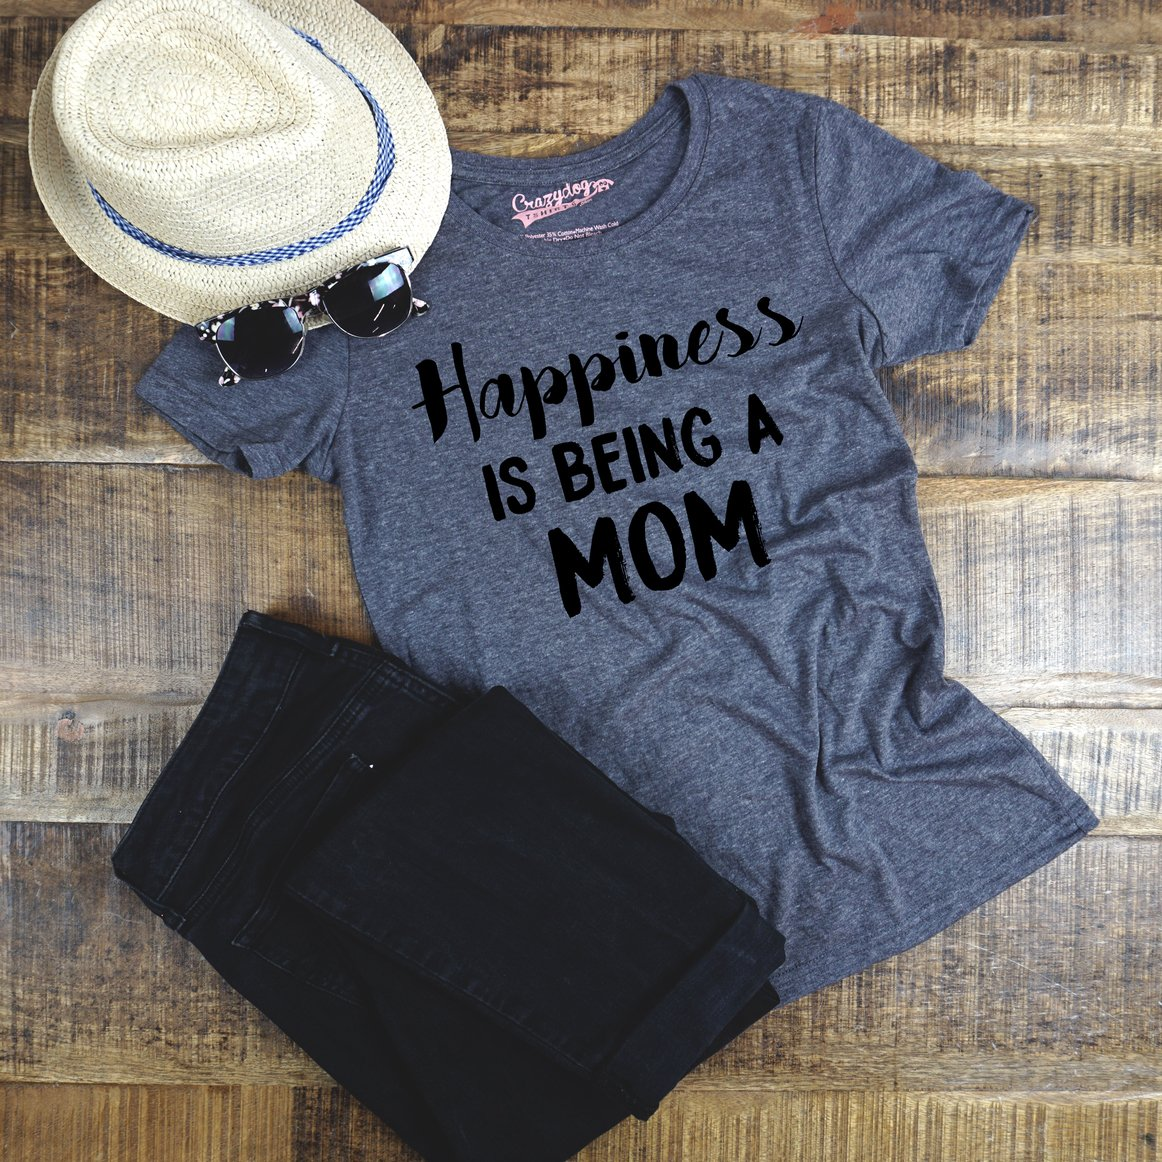 Happiness Is Being a Mom T-shirt